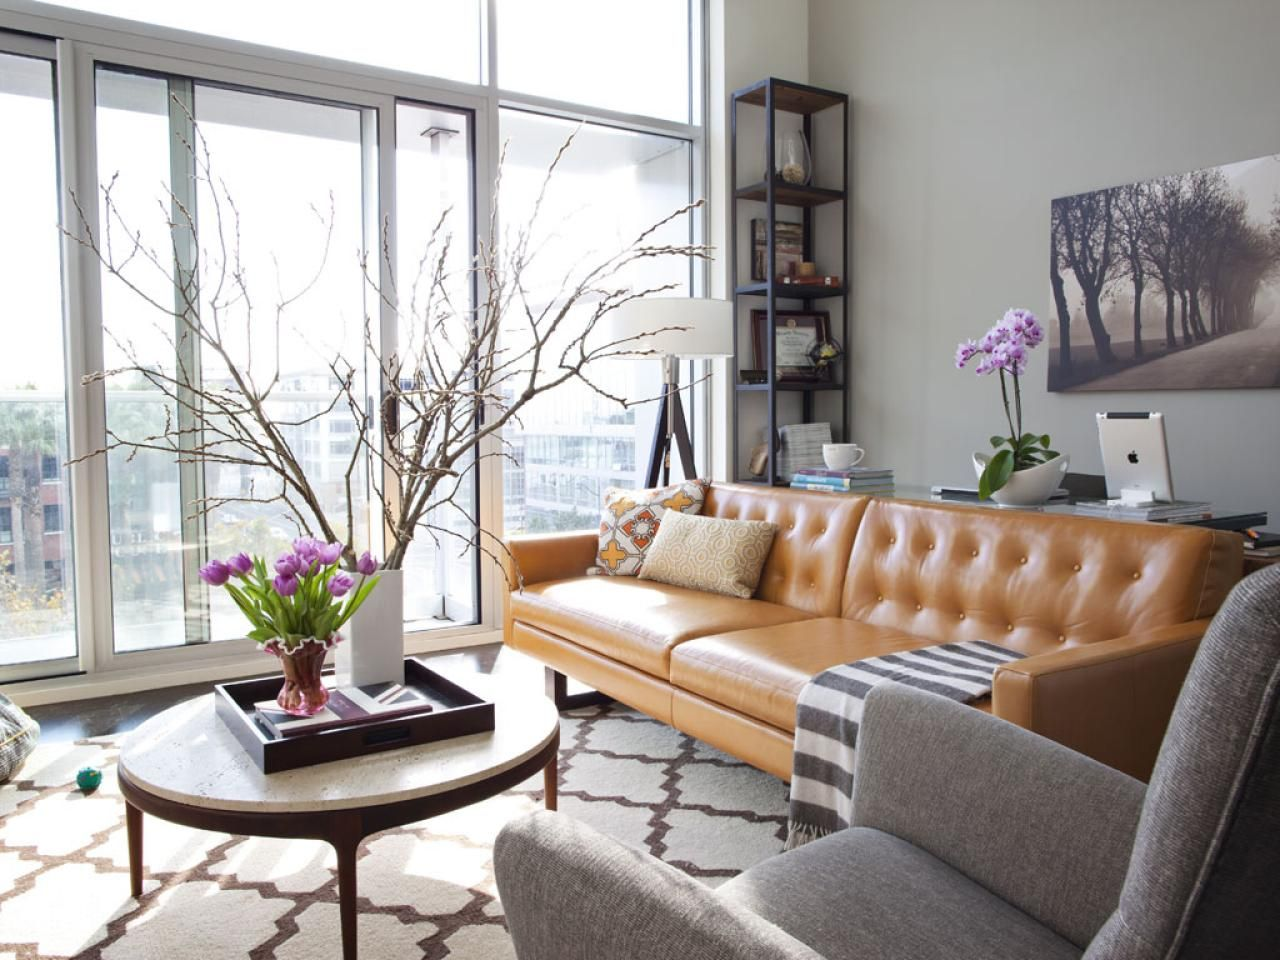 Living Room Design Tips Adorable Lifestyle Blogger's Spatiallychallenged Loft Design Tips  Orange Design Inspiration